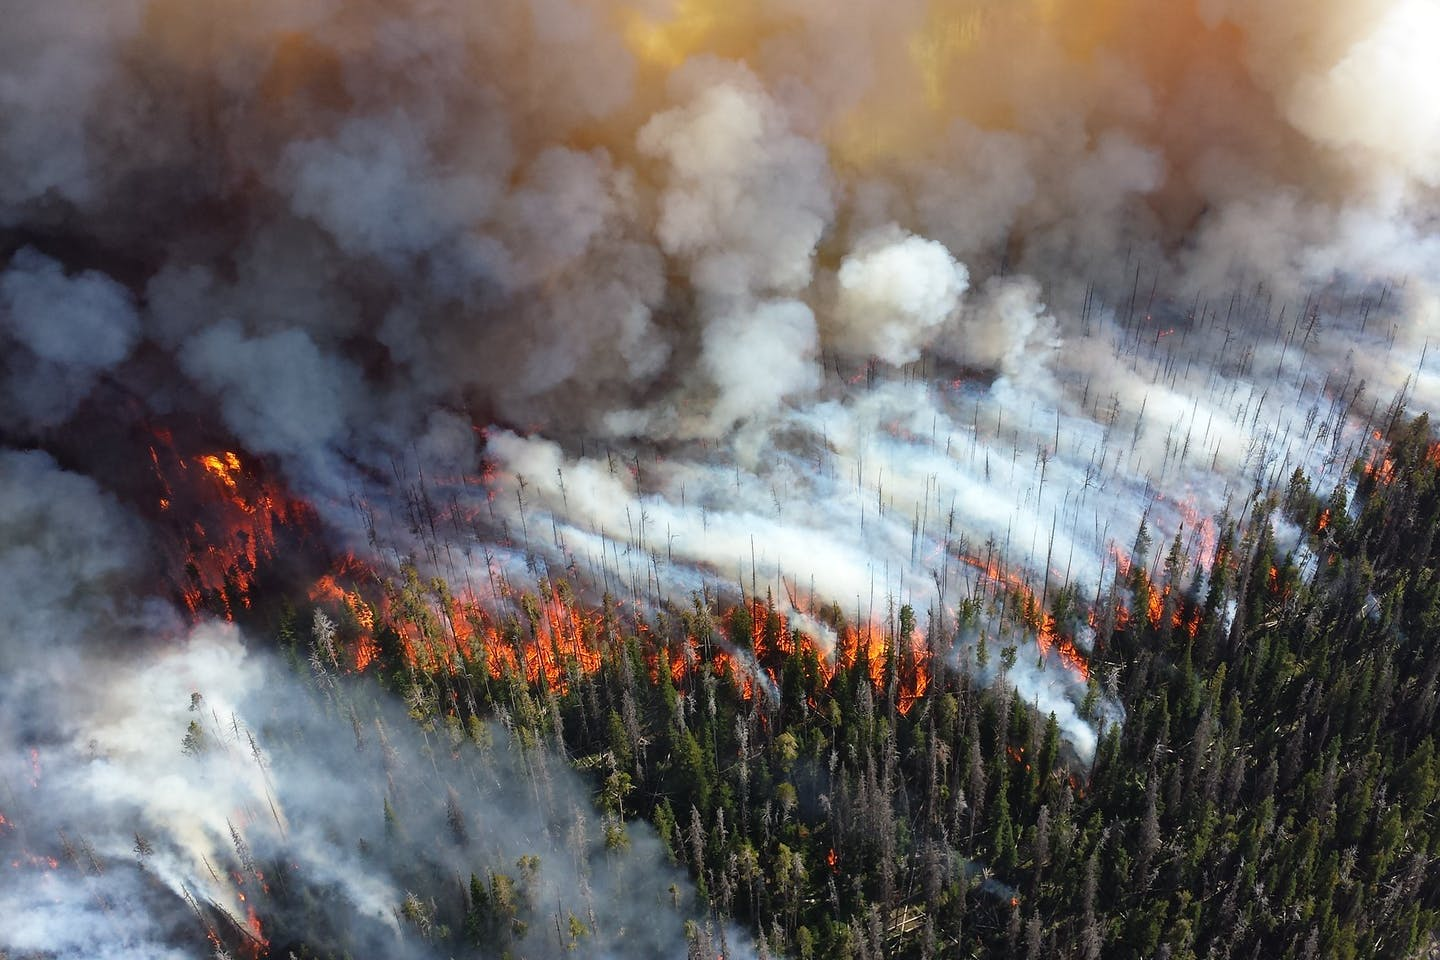 Wildfires ravaging the American west coast.